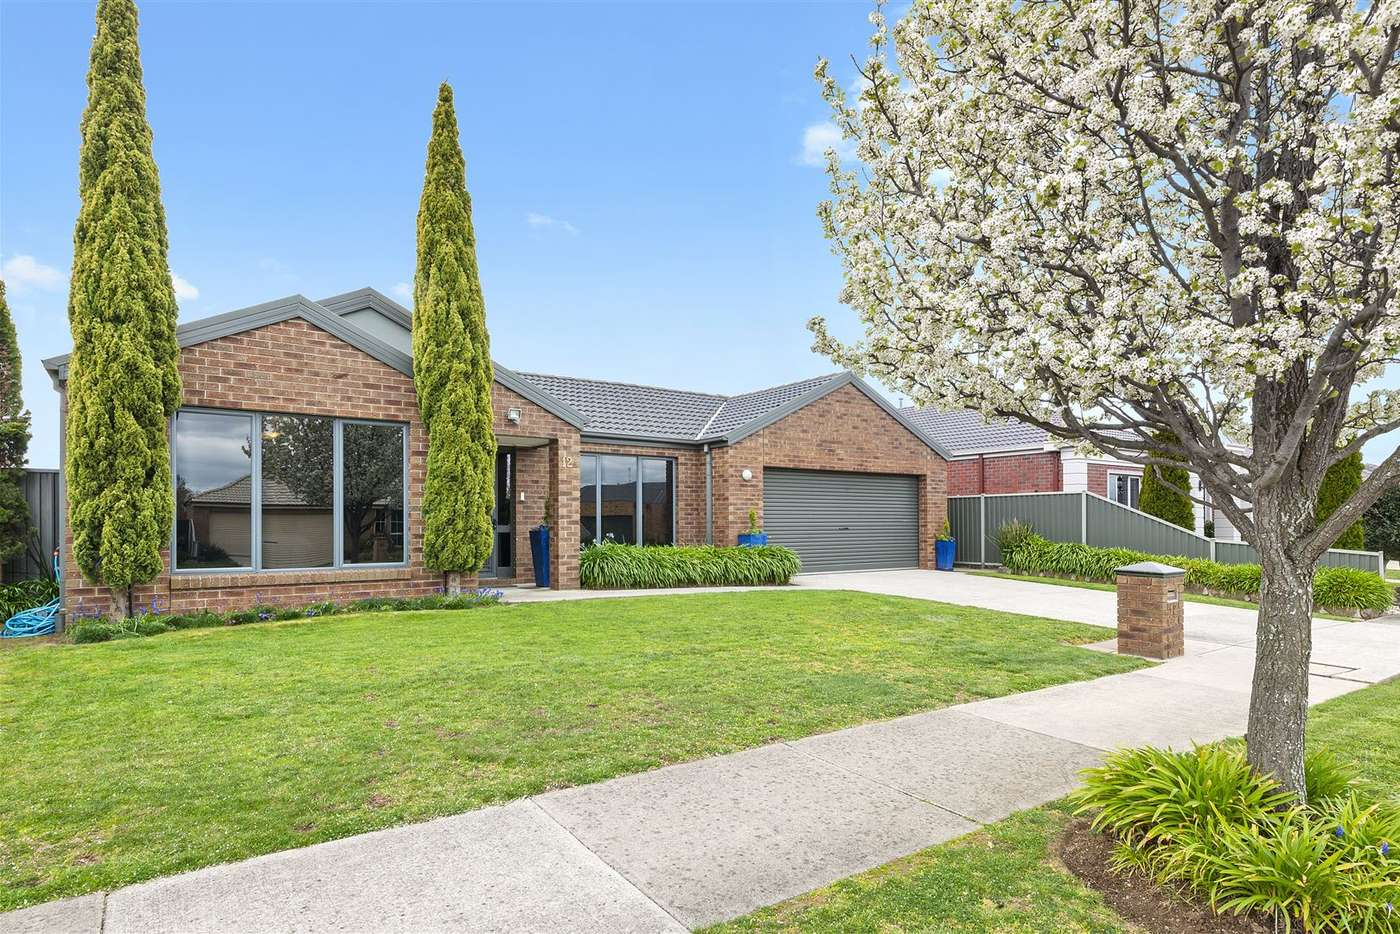 Main view of Homely house listing, 12 Nimble Drive, Delacombe VIC 3356